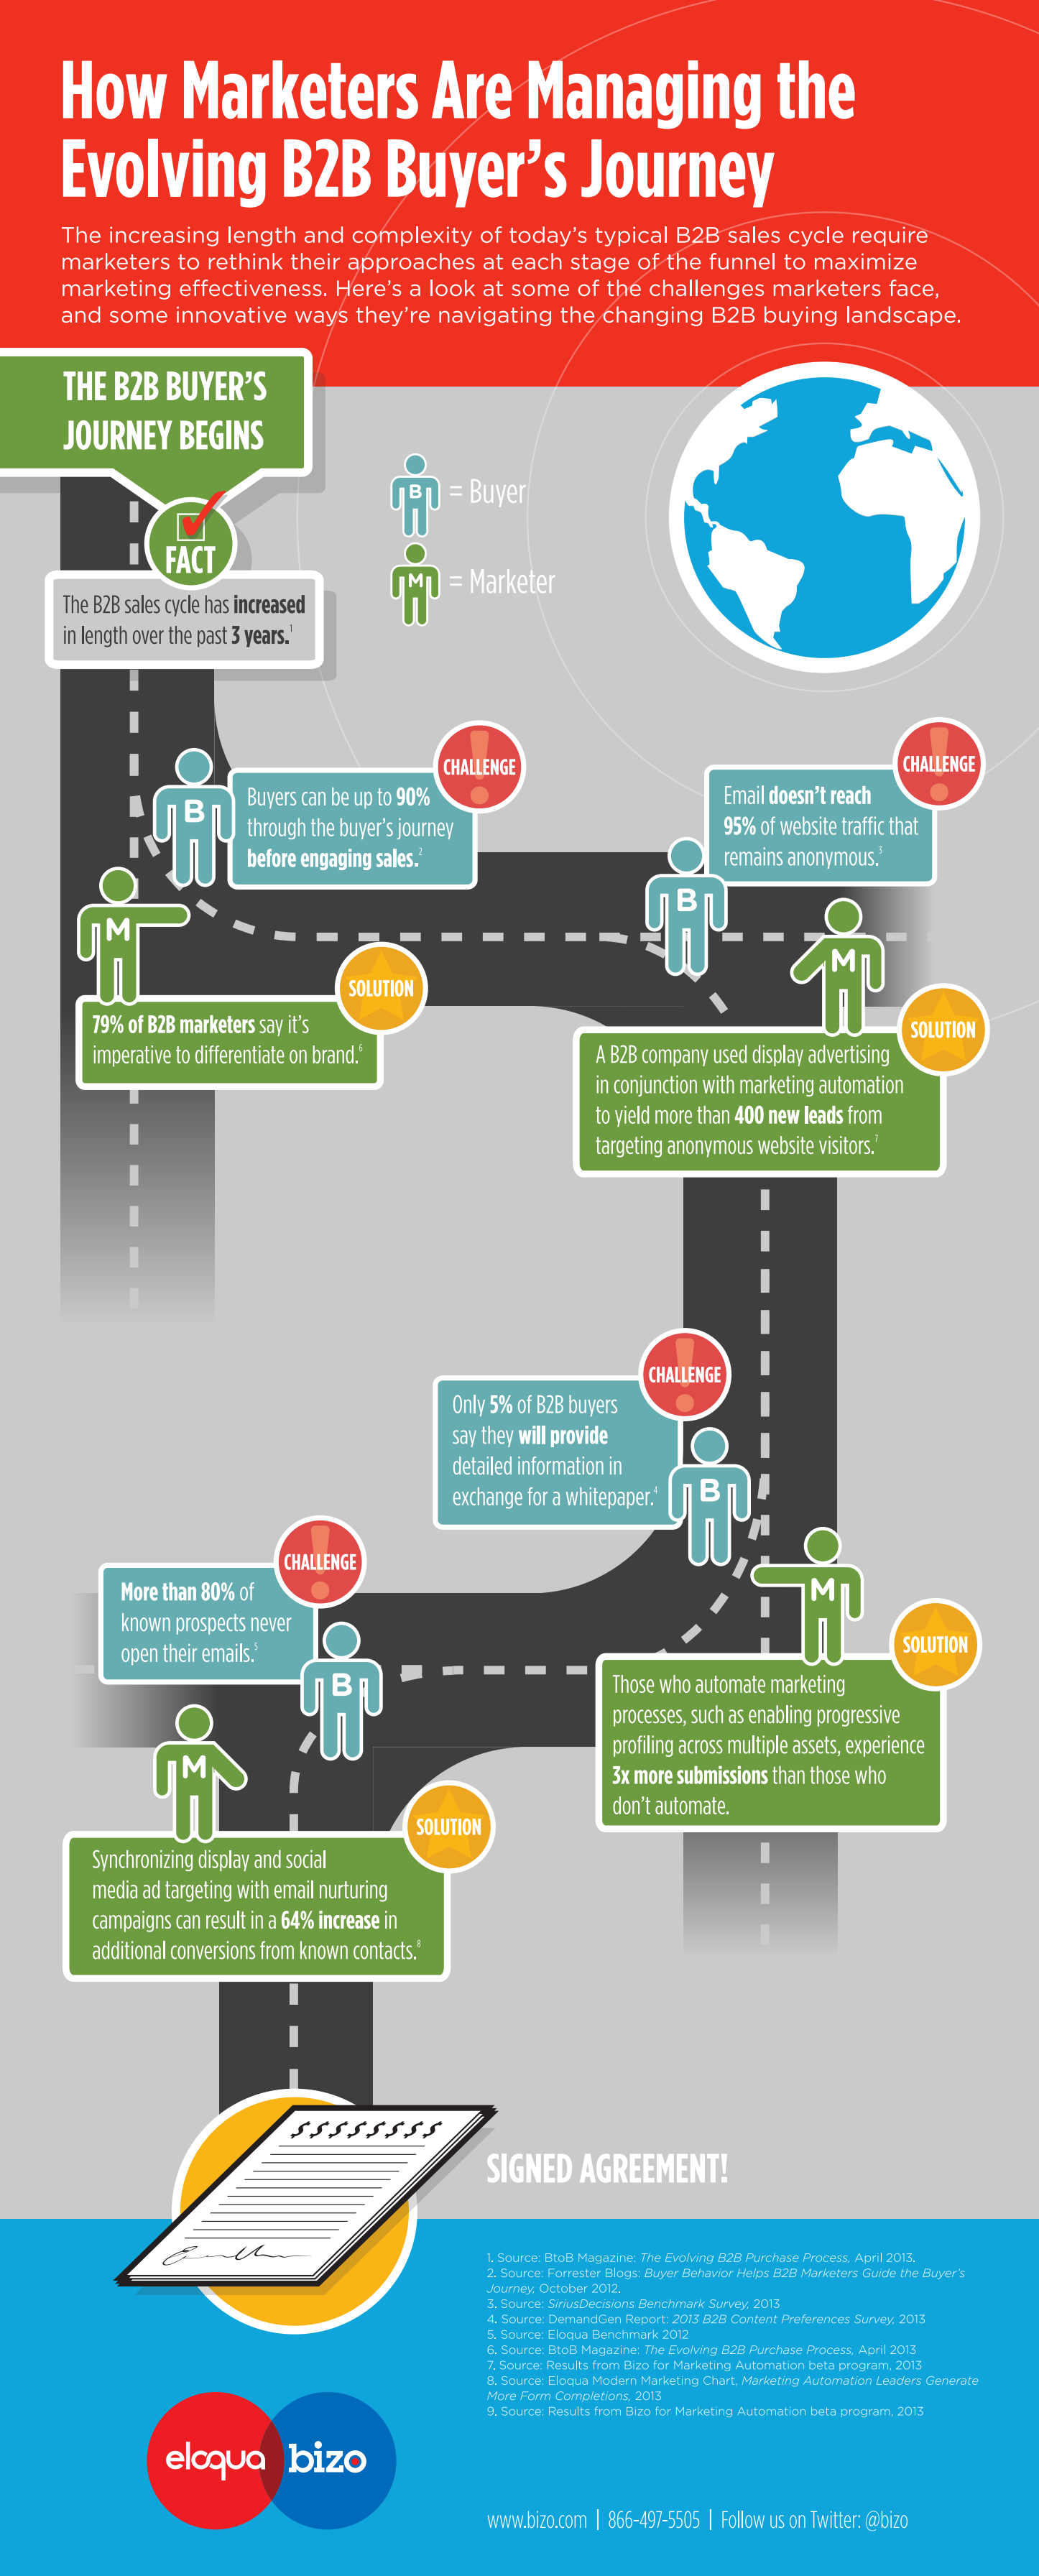 How Marketers Are Managing The Evolving B2B Buyer's Journey - infographic